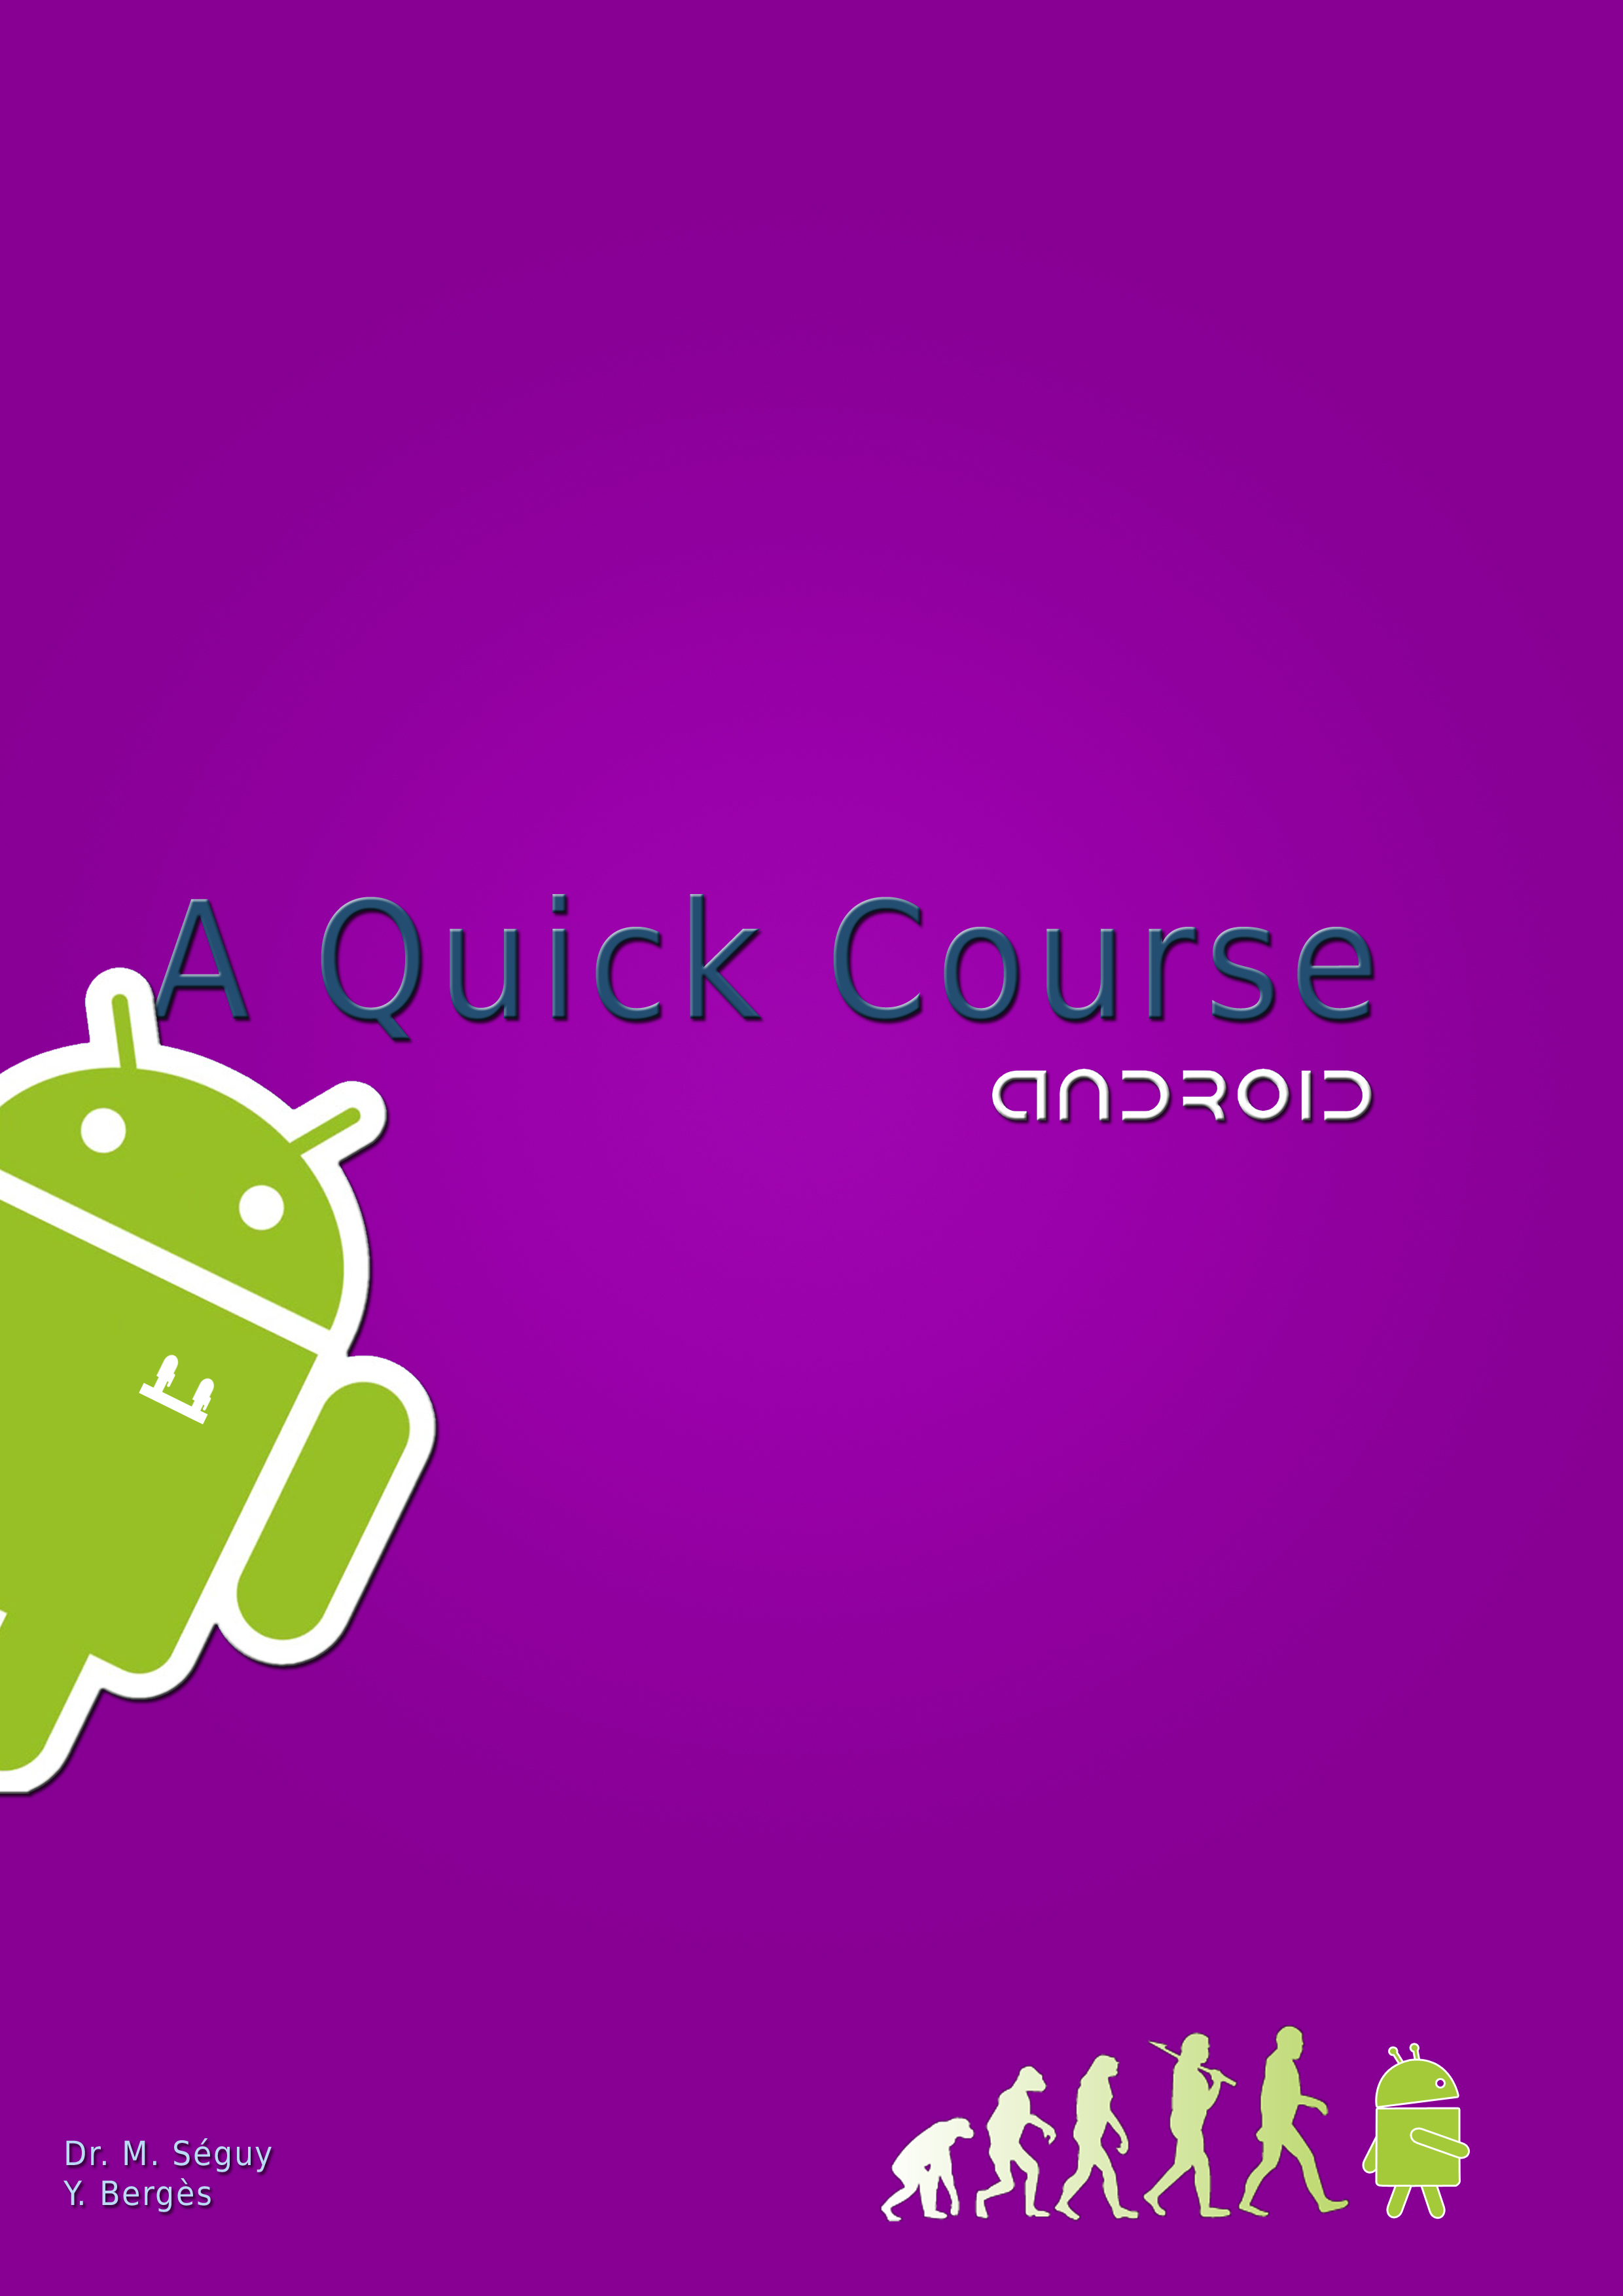 Android, A Quick Course